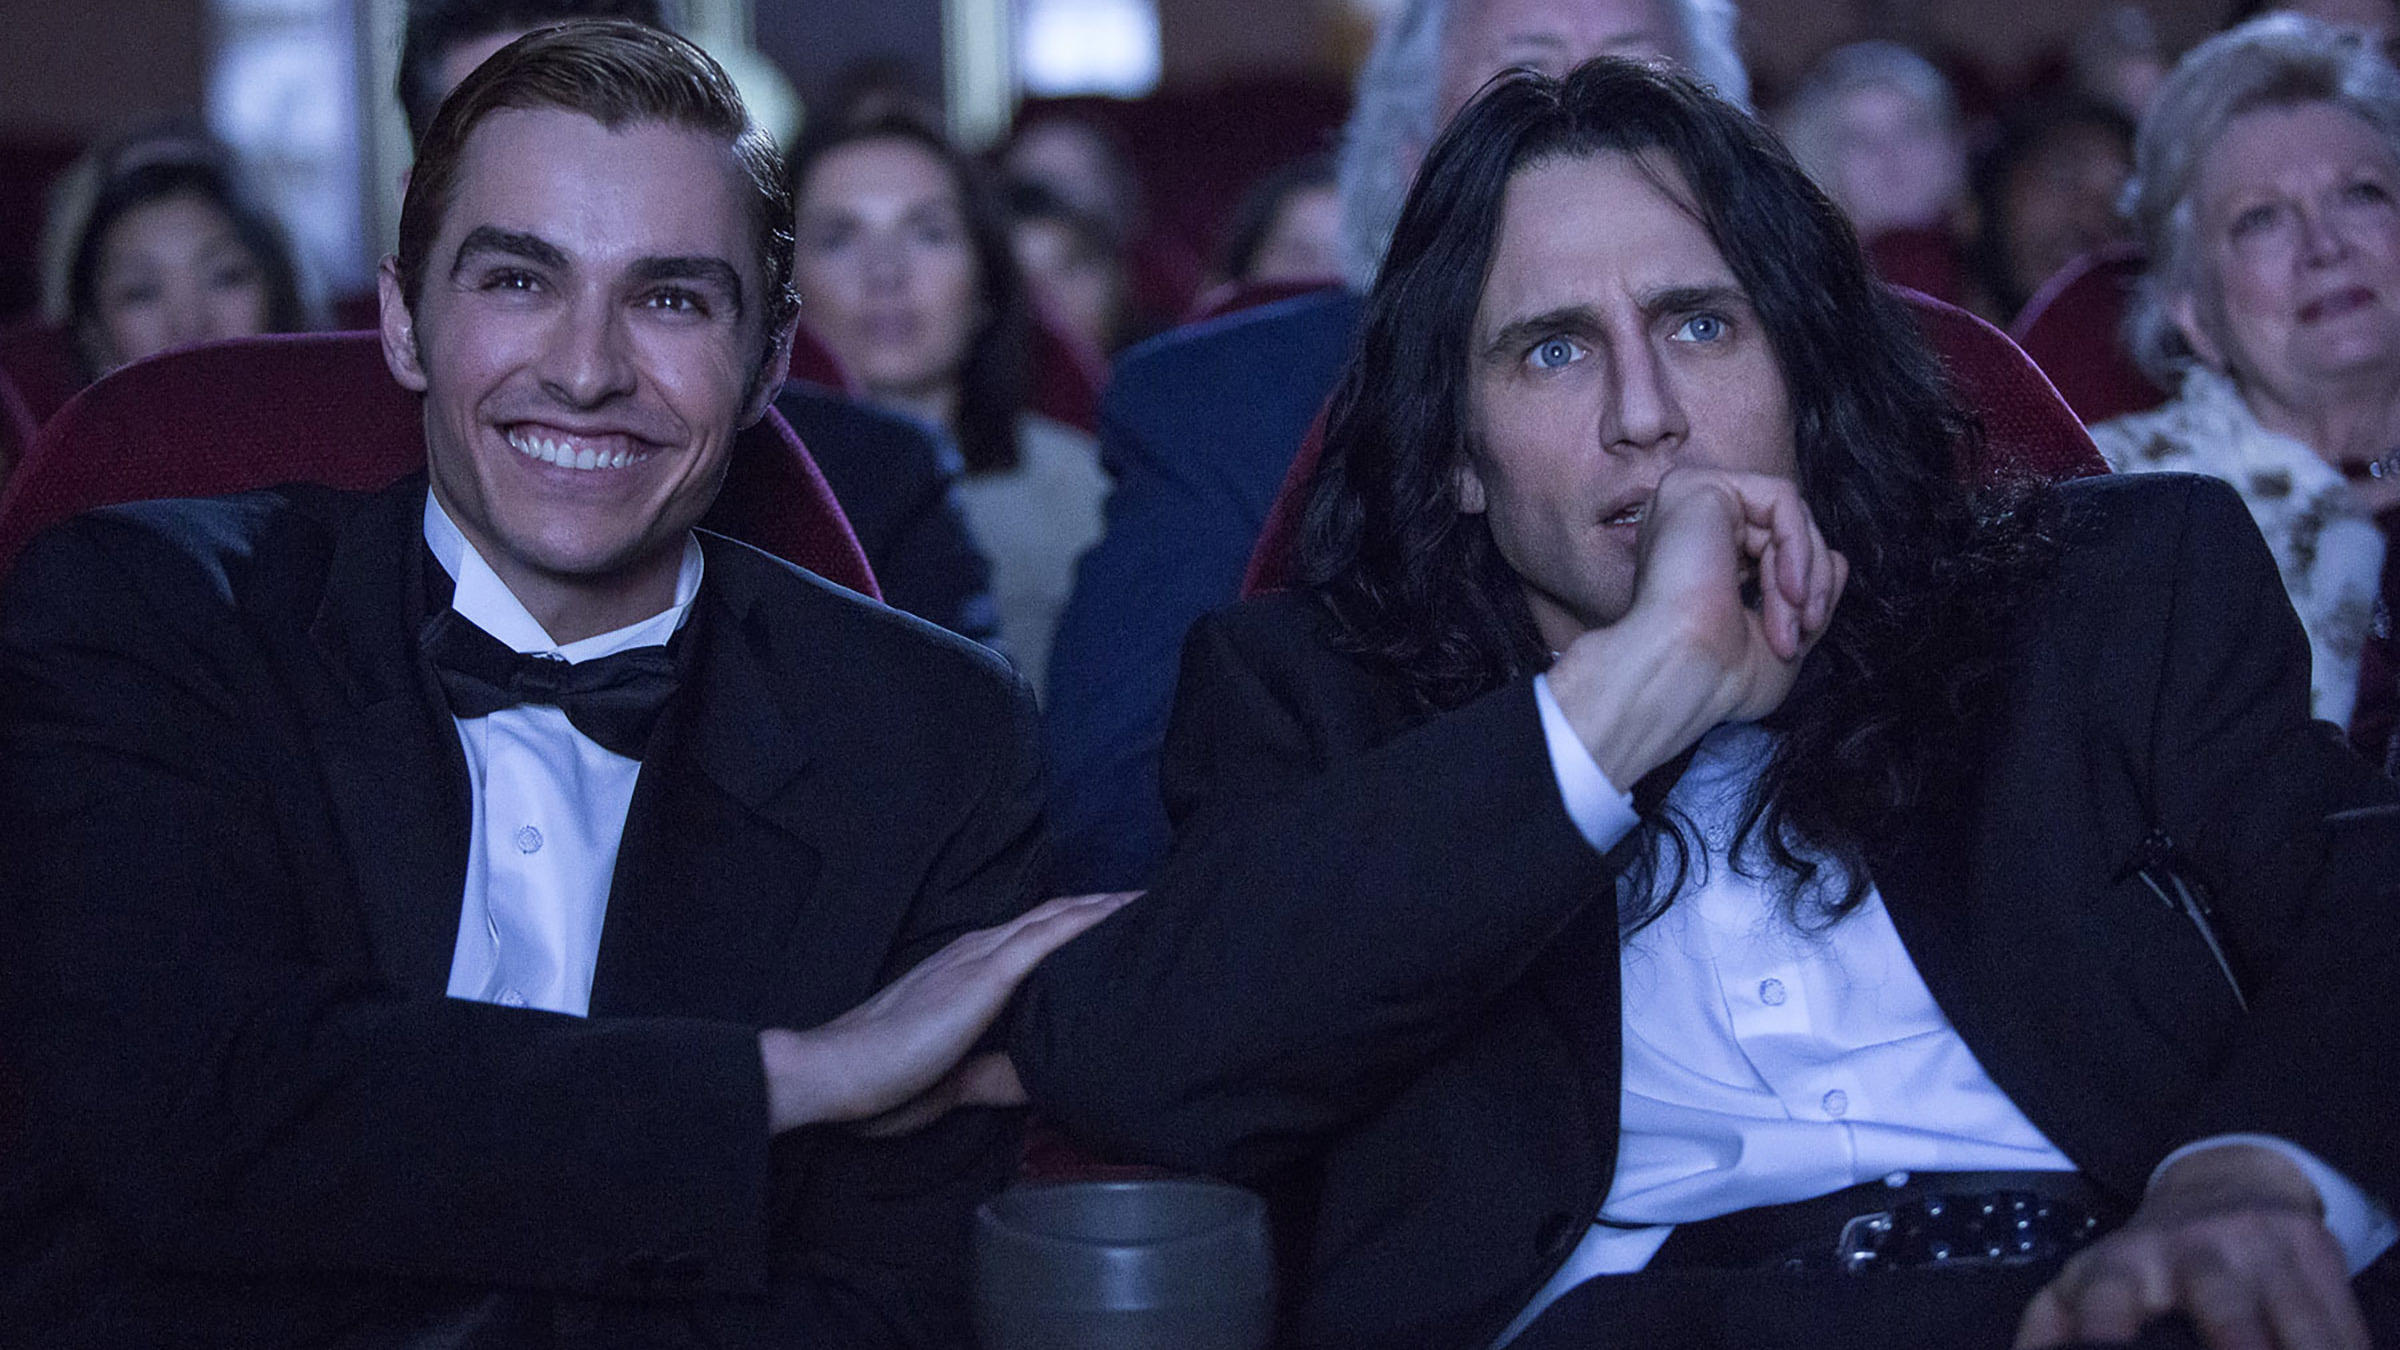 The disaster artist is the room where it happened wppb nothings gonna tear them apart lisa greg dave franco and tommy james franco wait for the lights to go down in the disaster artist m4hsunfo